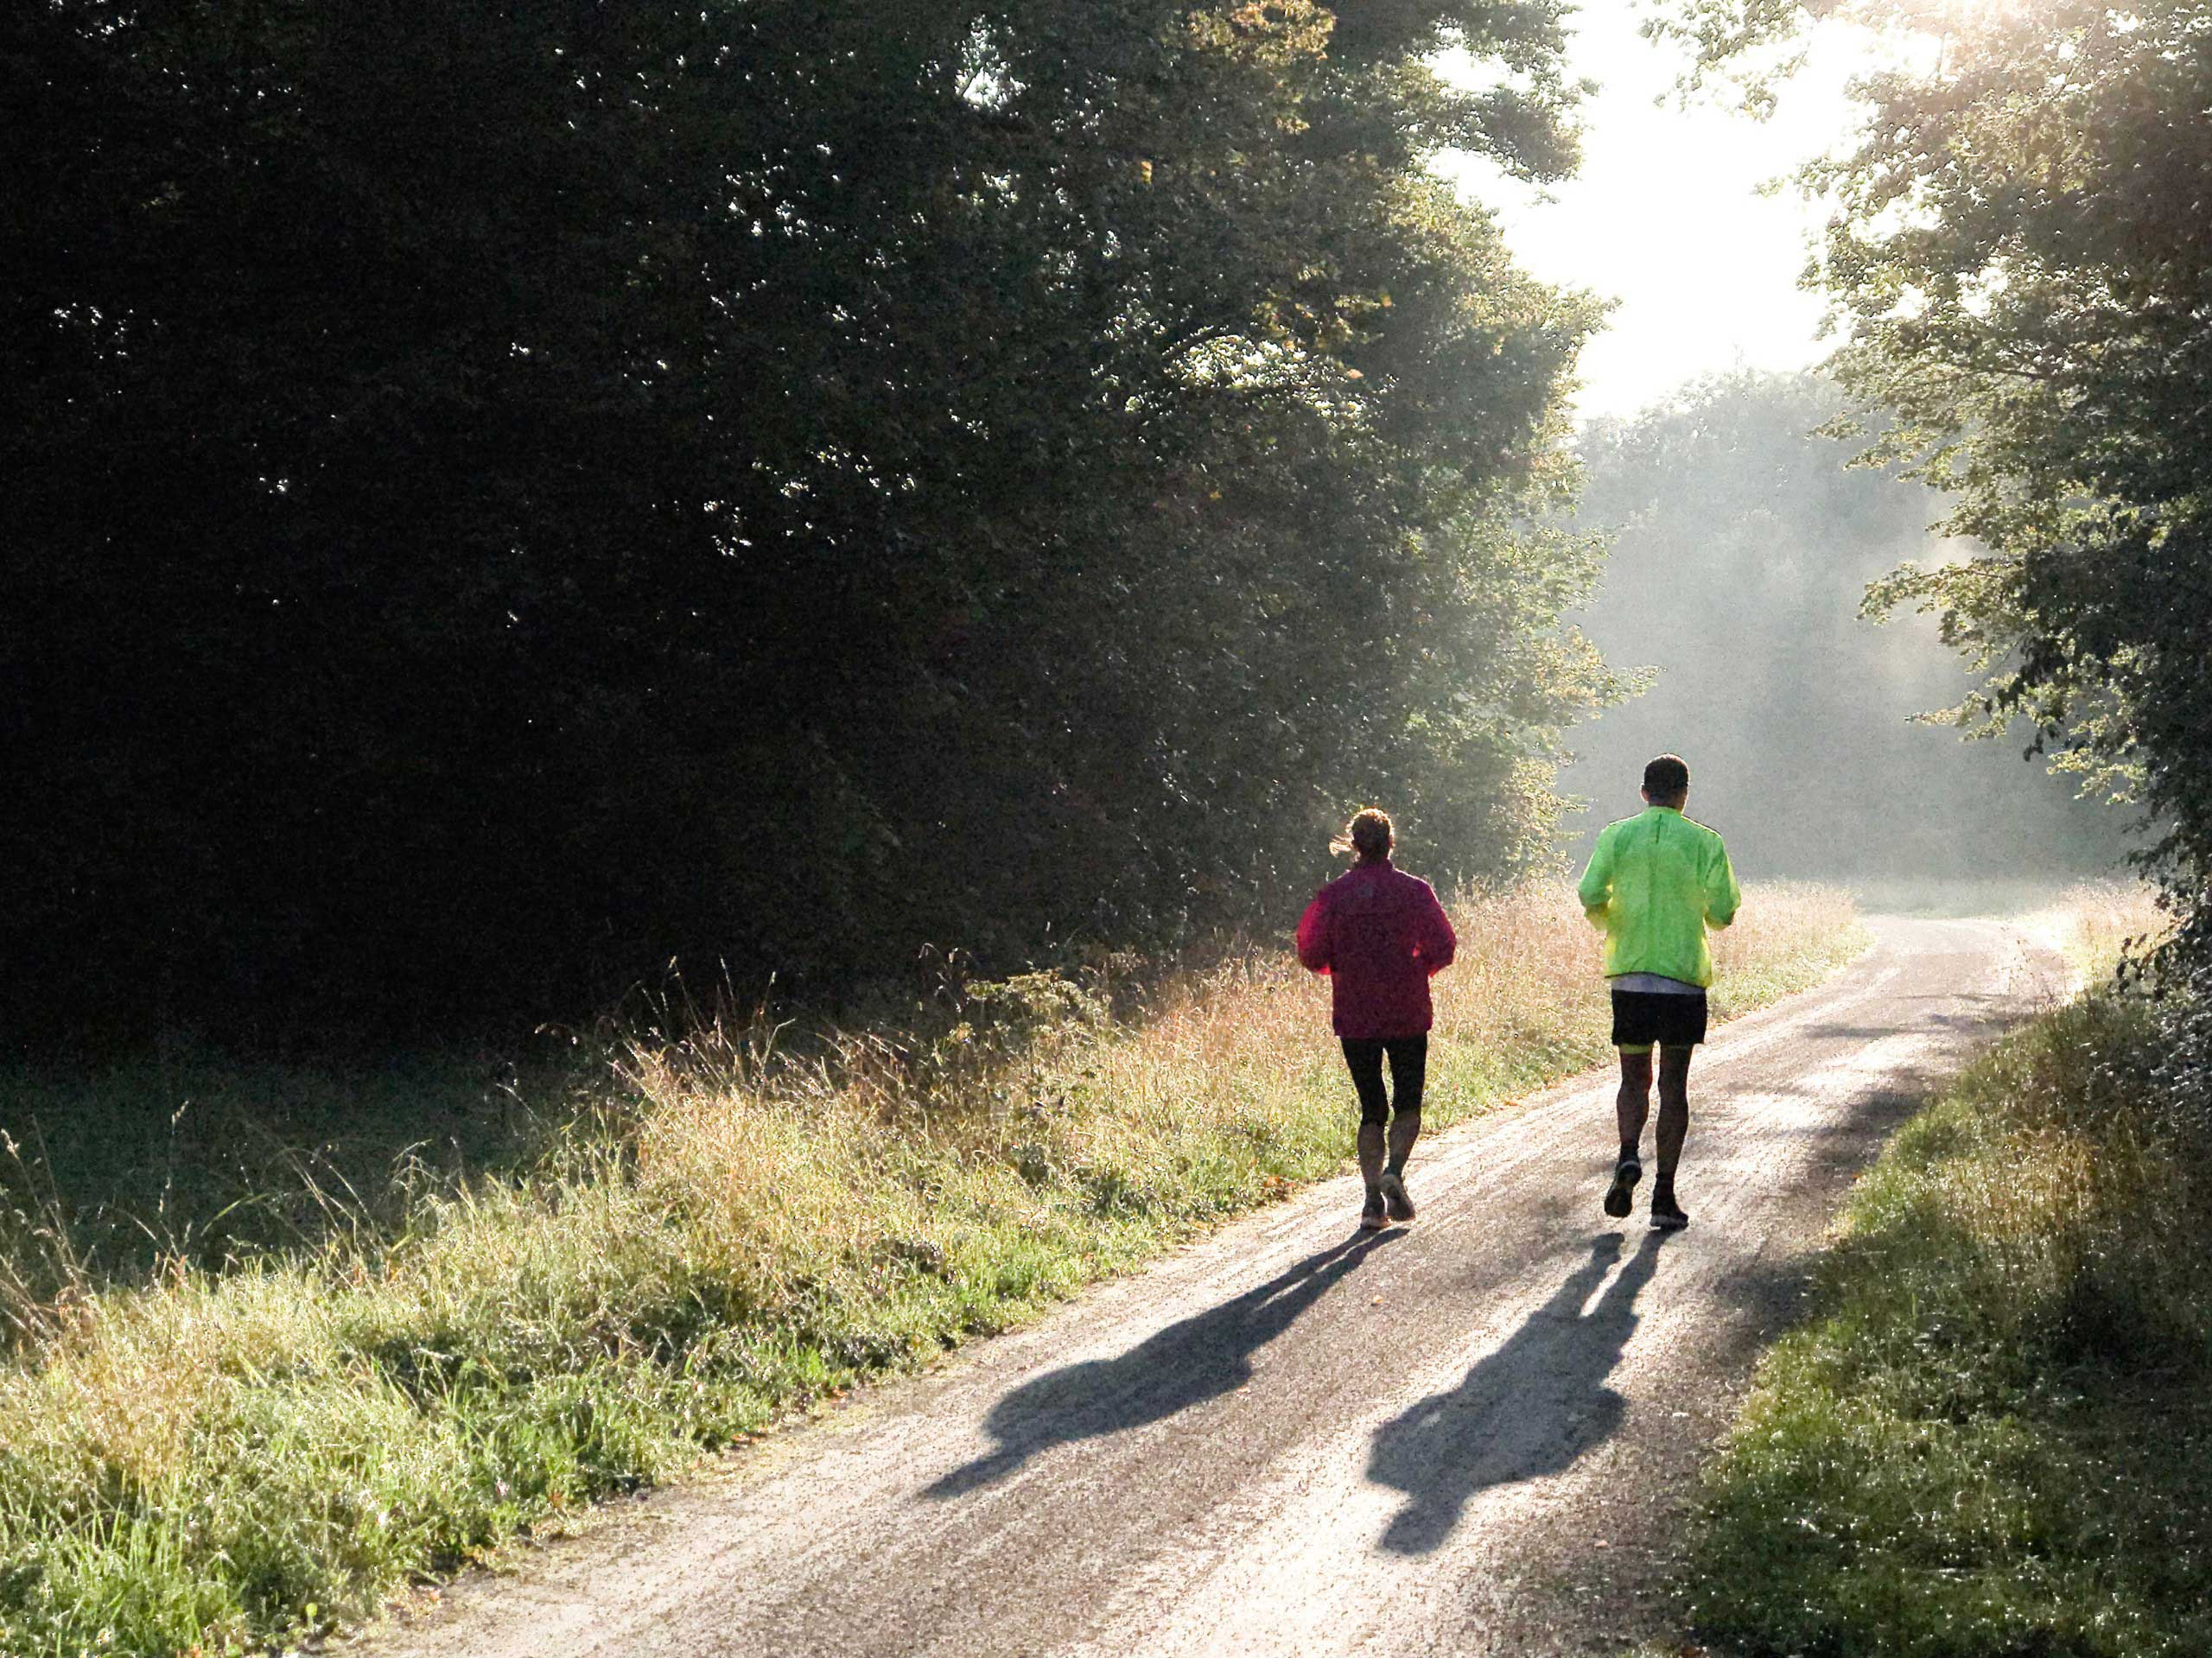 Two people out running